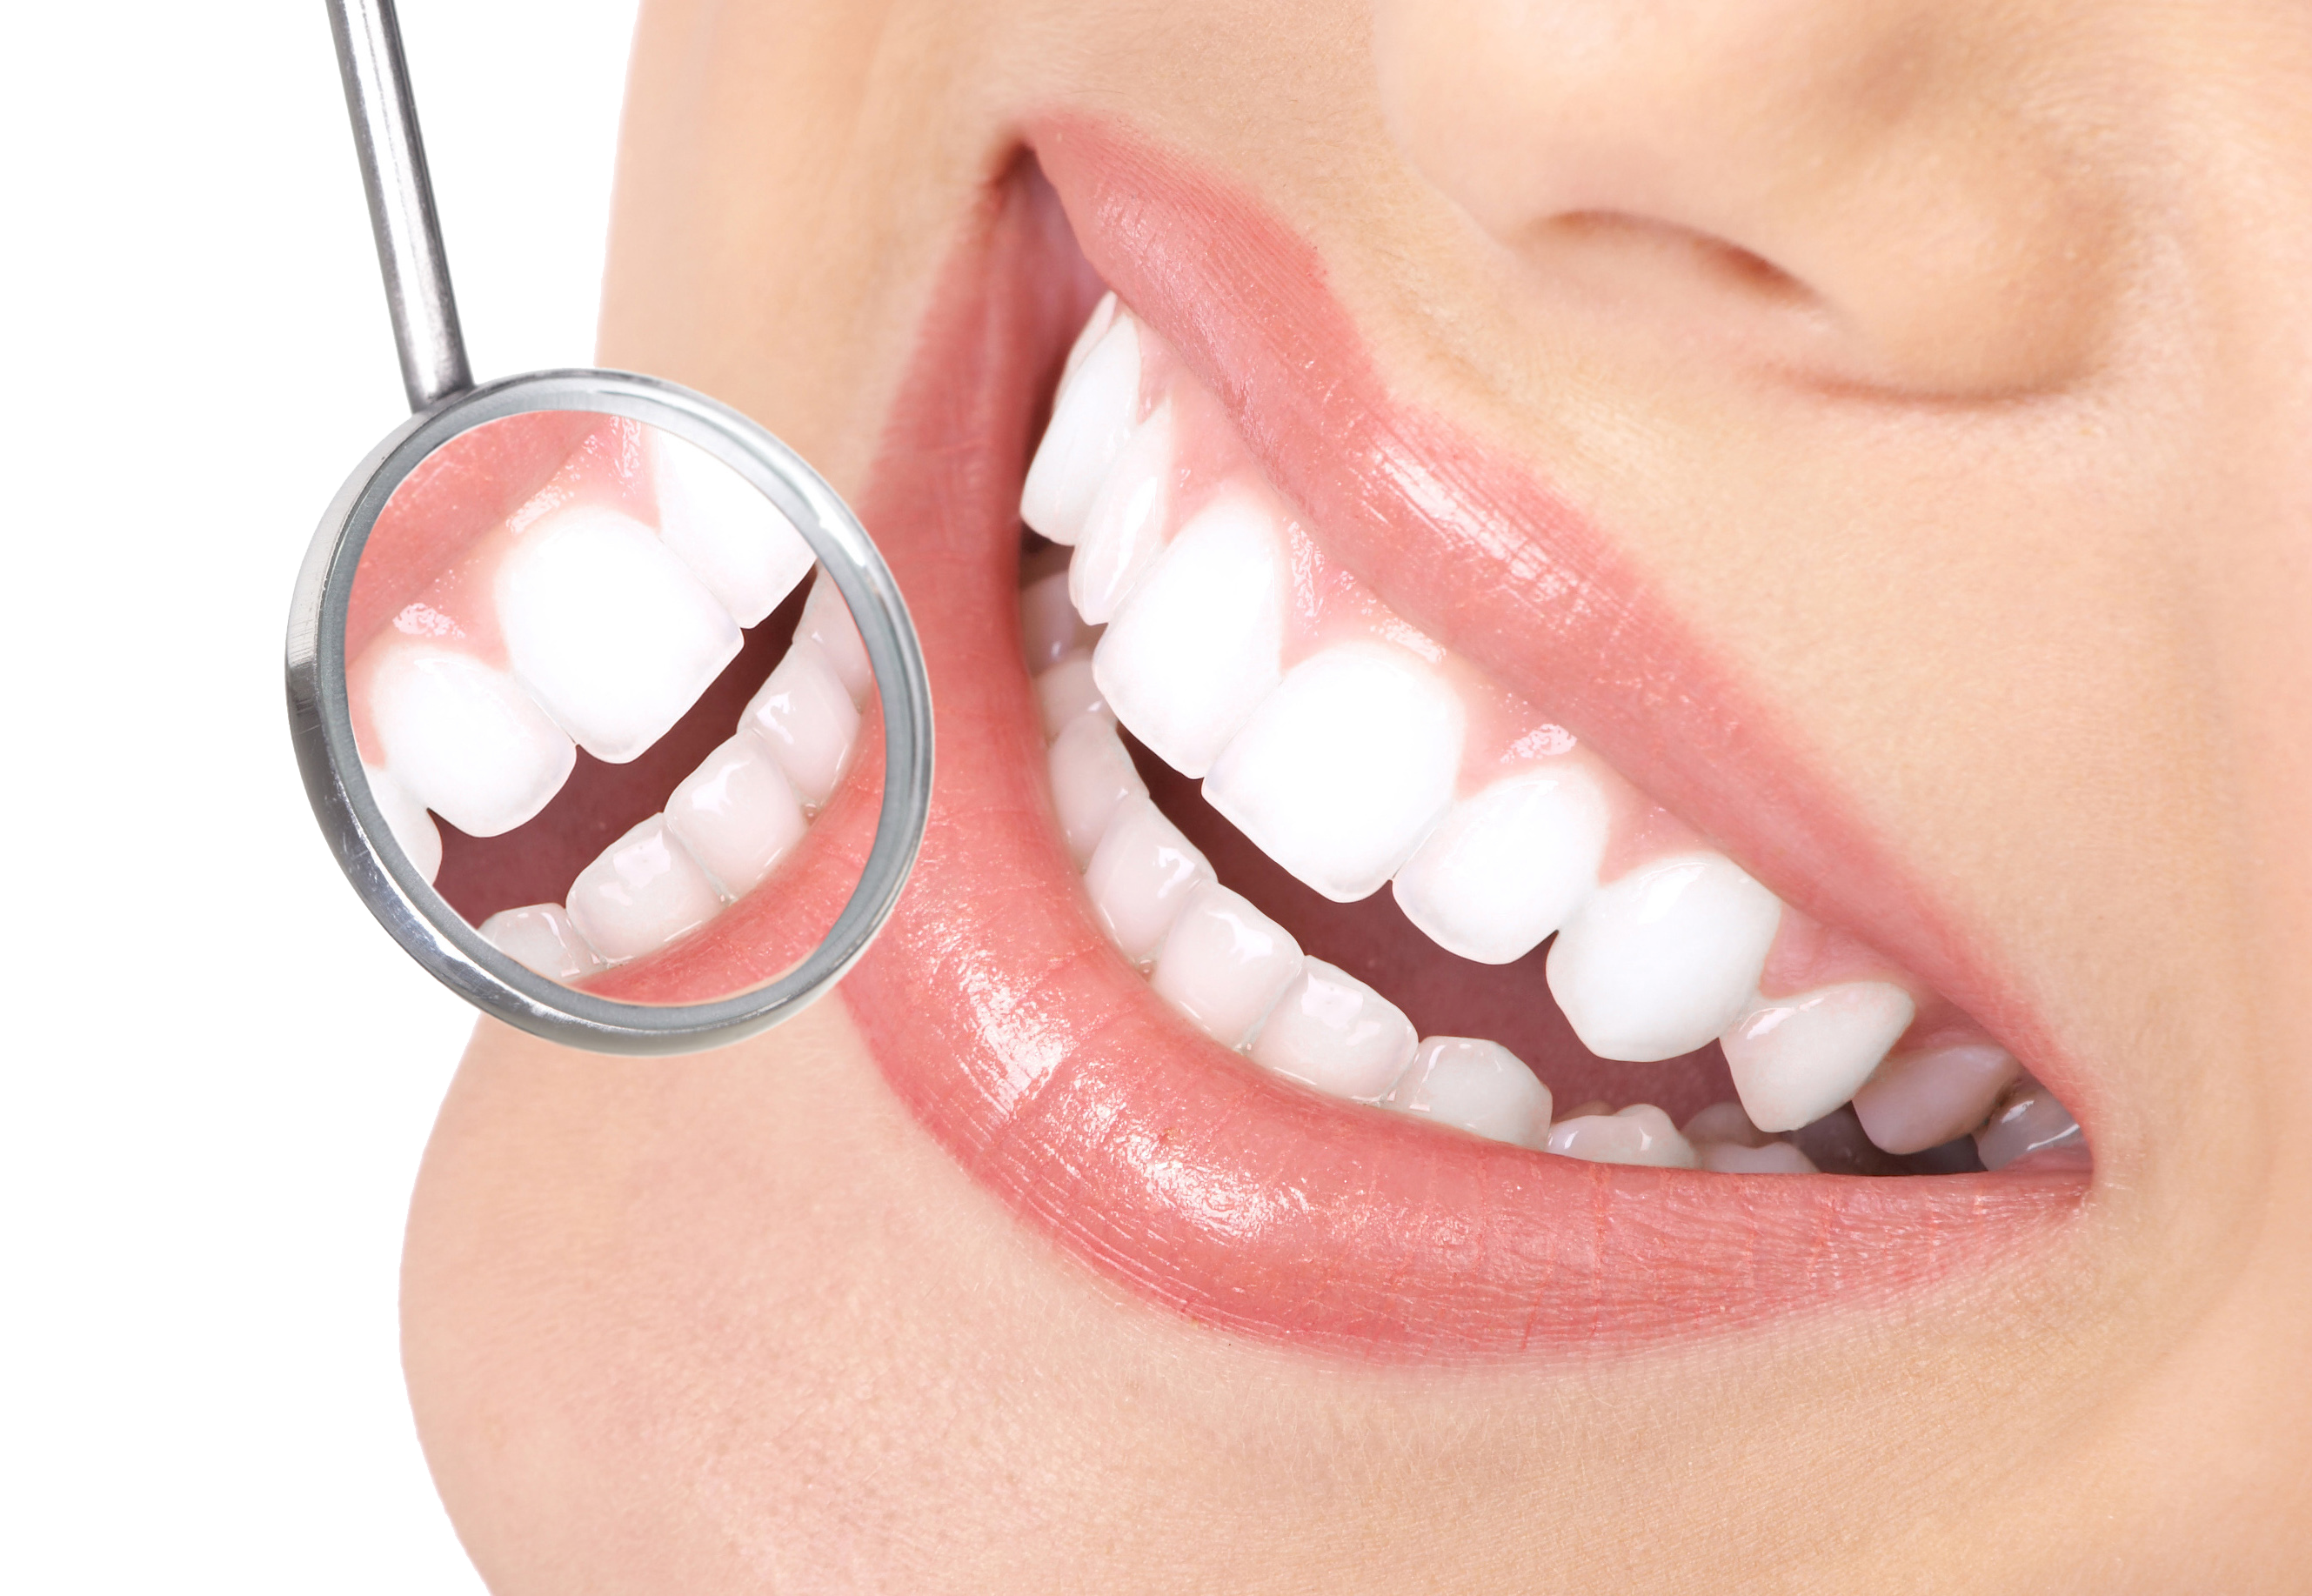 Shotley Bridge Dental Care – Shotley Bridge Dental Care